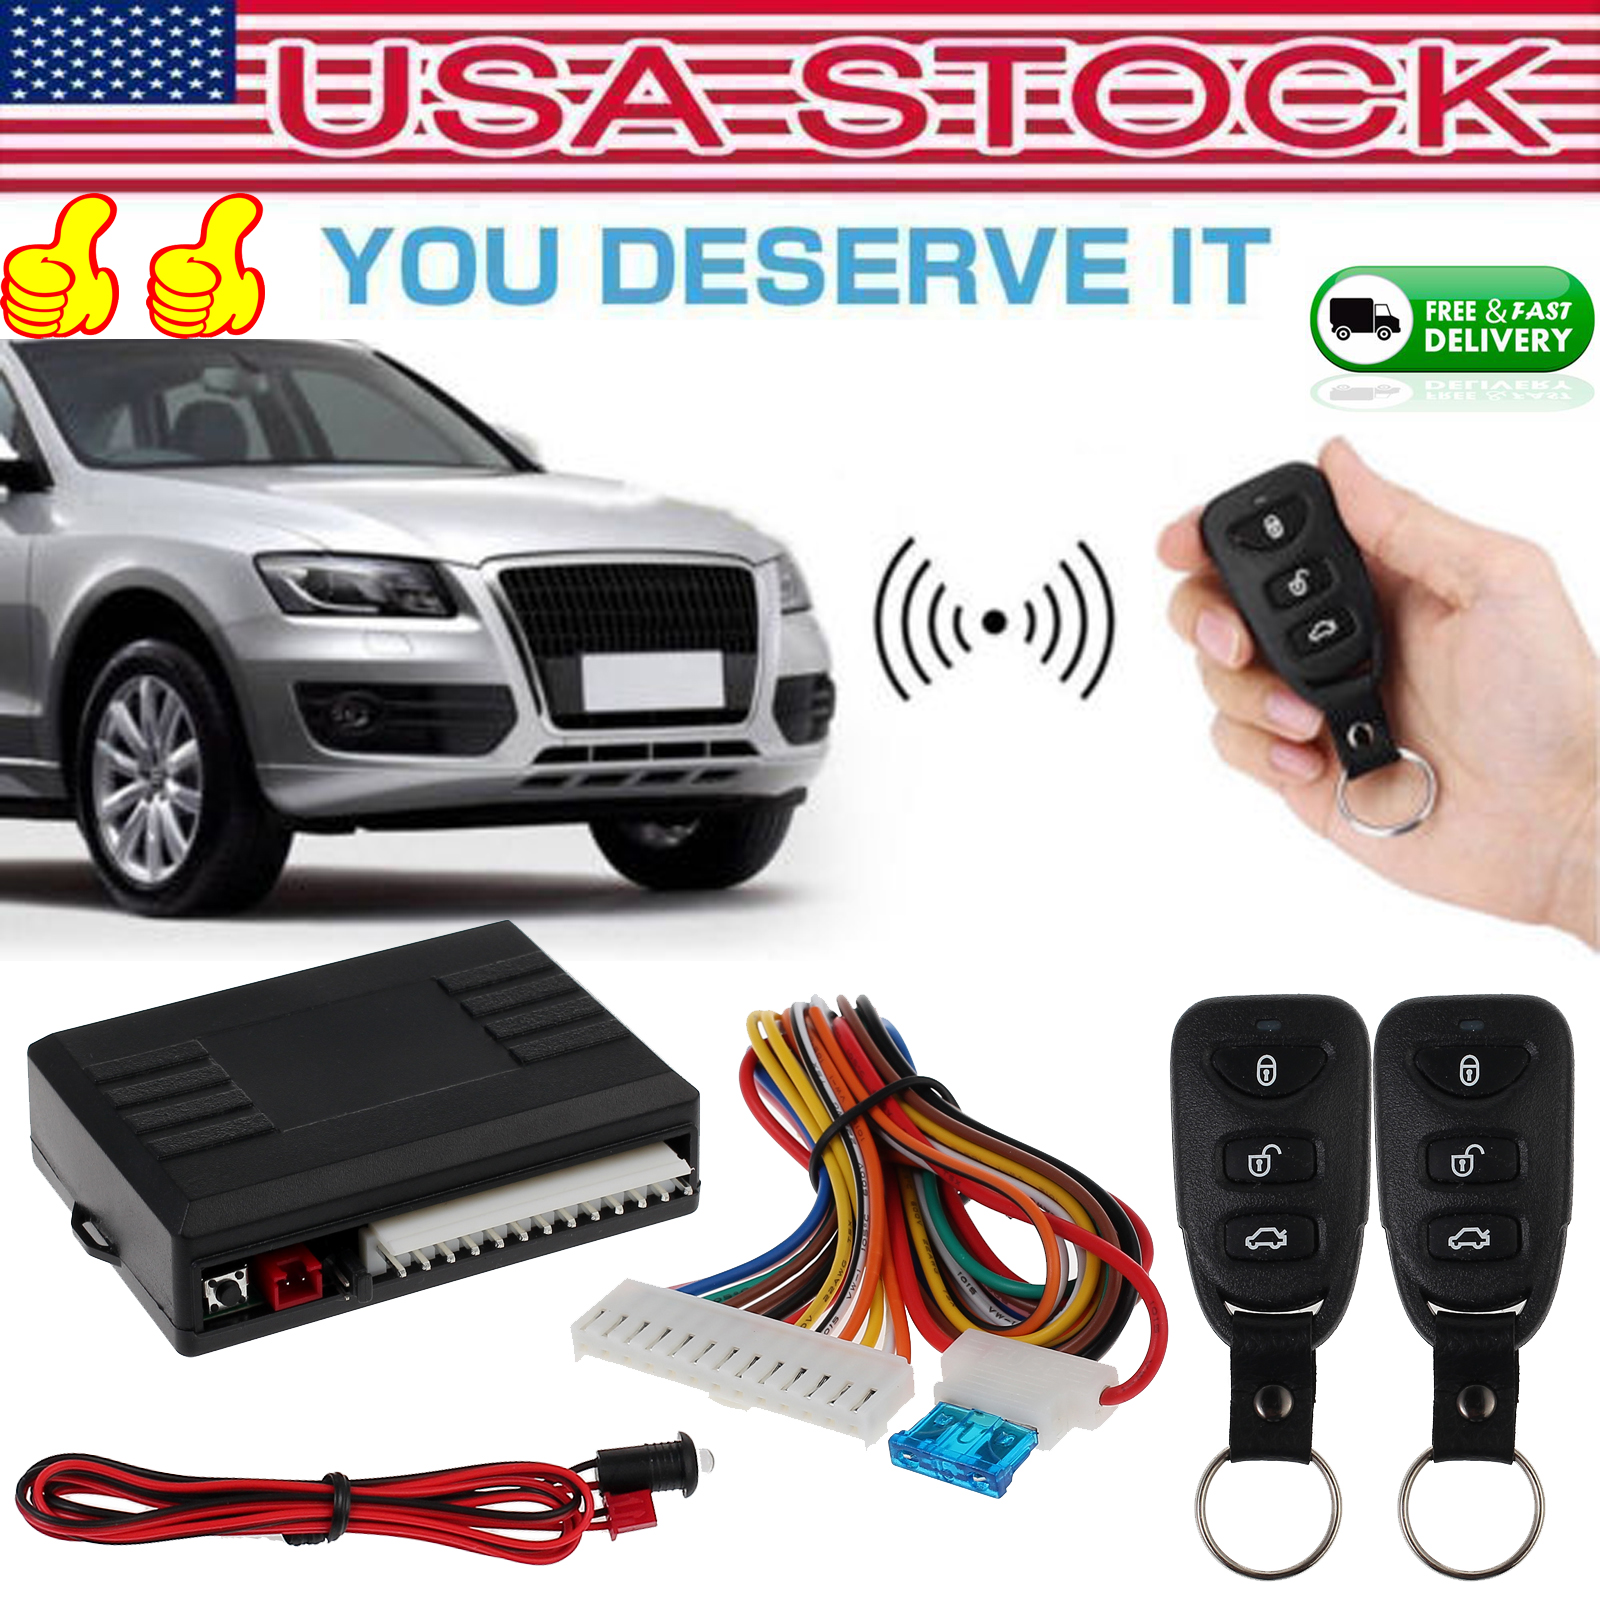 Central Kit Door Locking Vehicle Keyless Entry System W// 2Pcs Remote Controllers